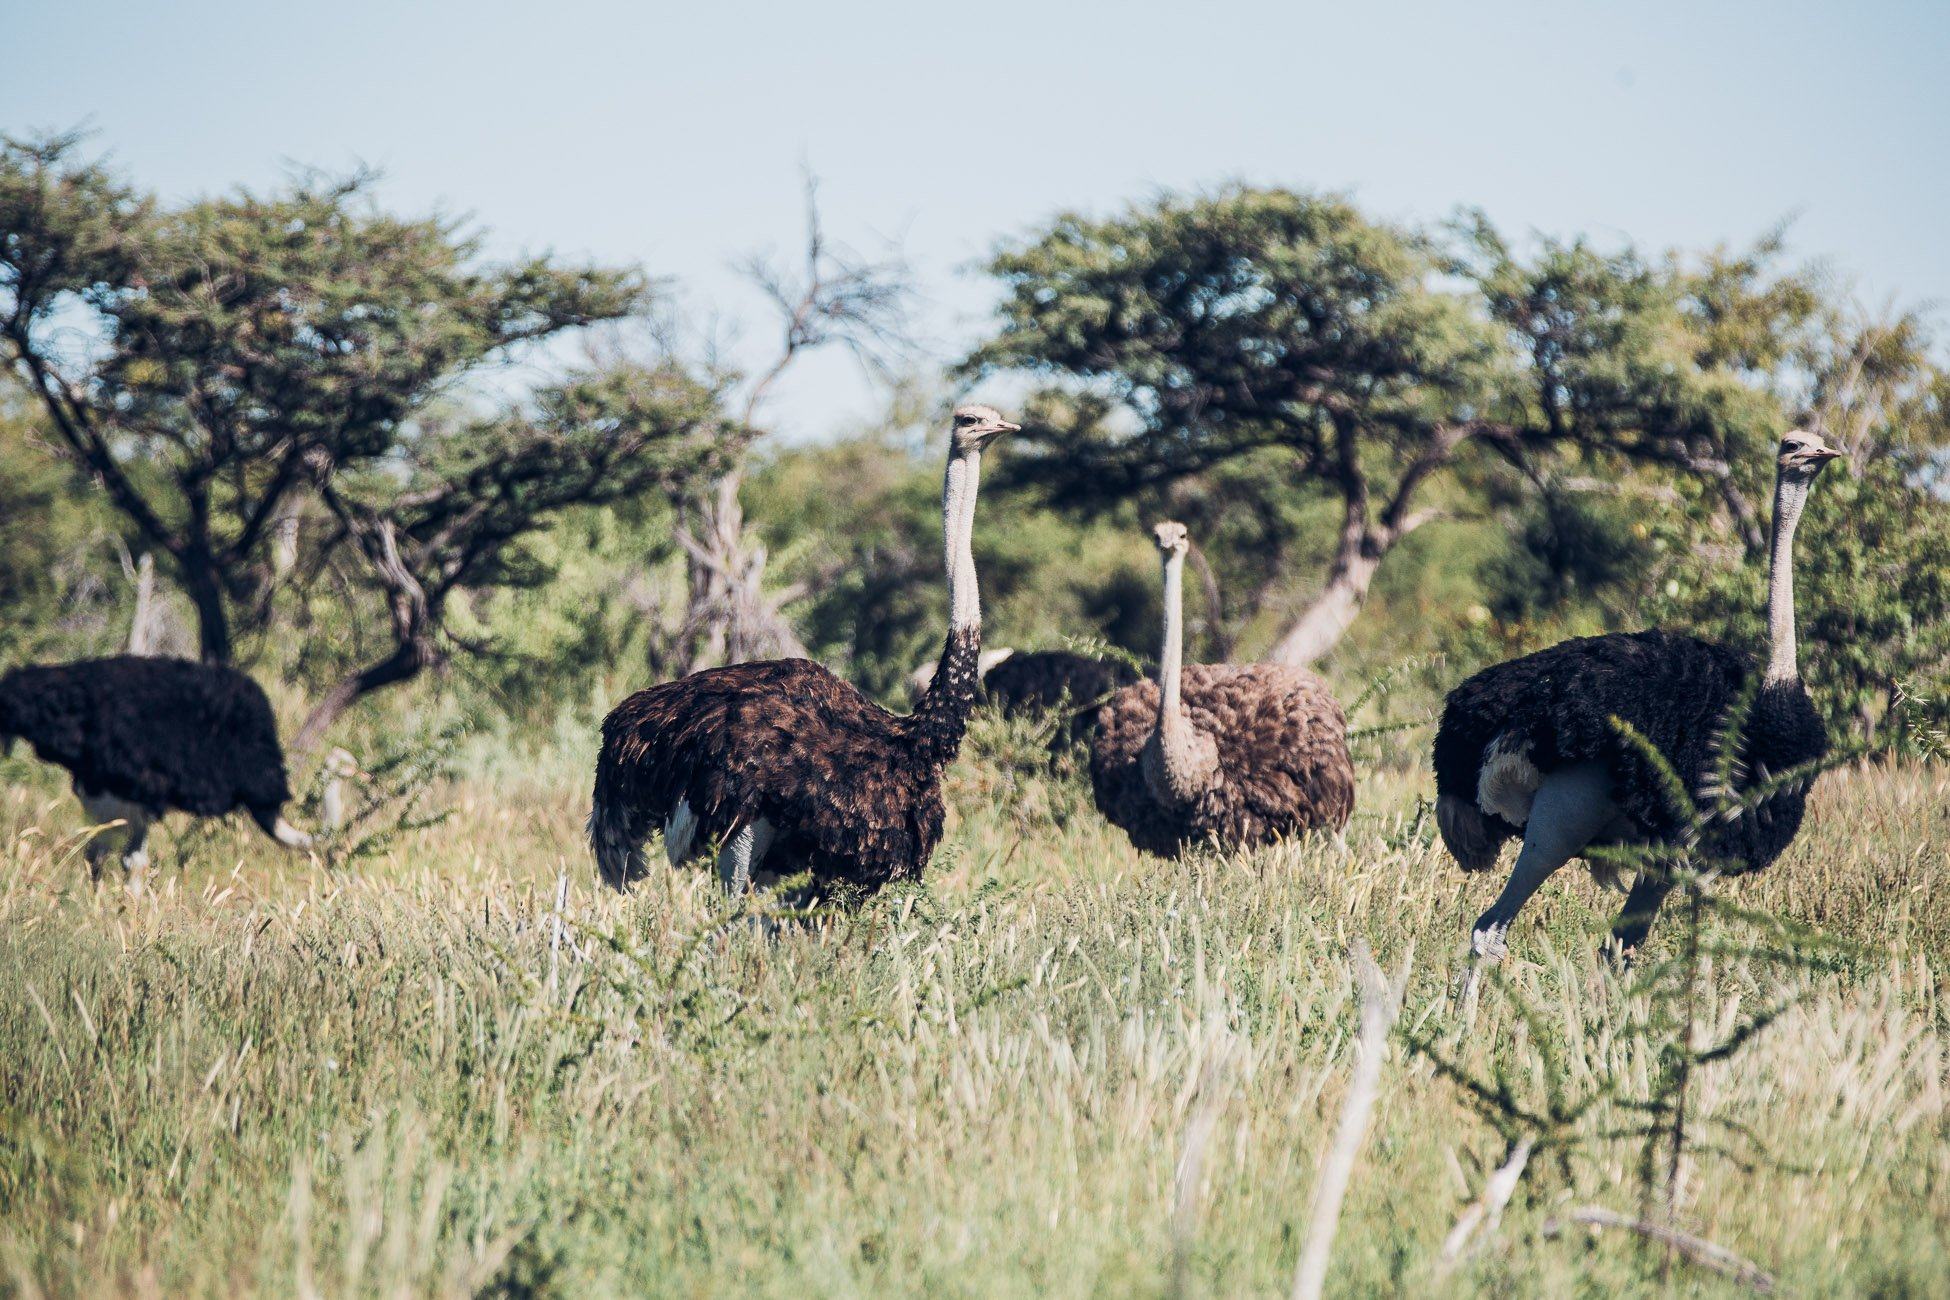 Ostriches at Etosha National Park